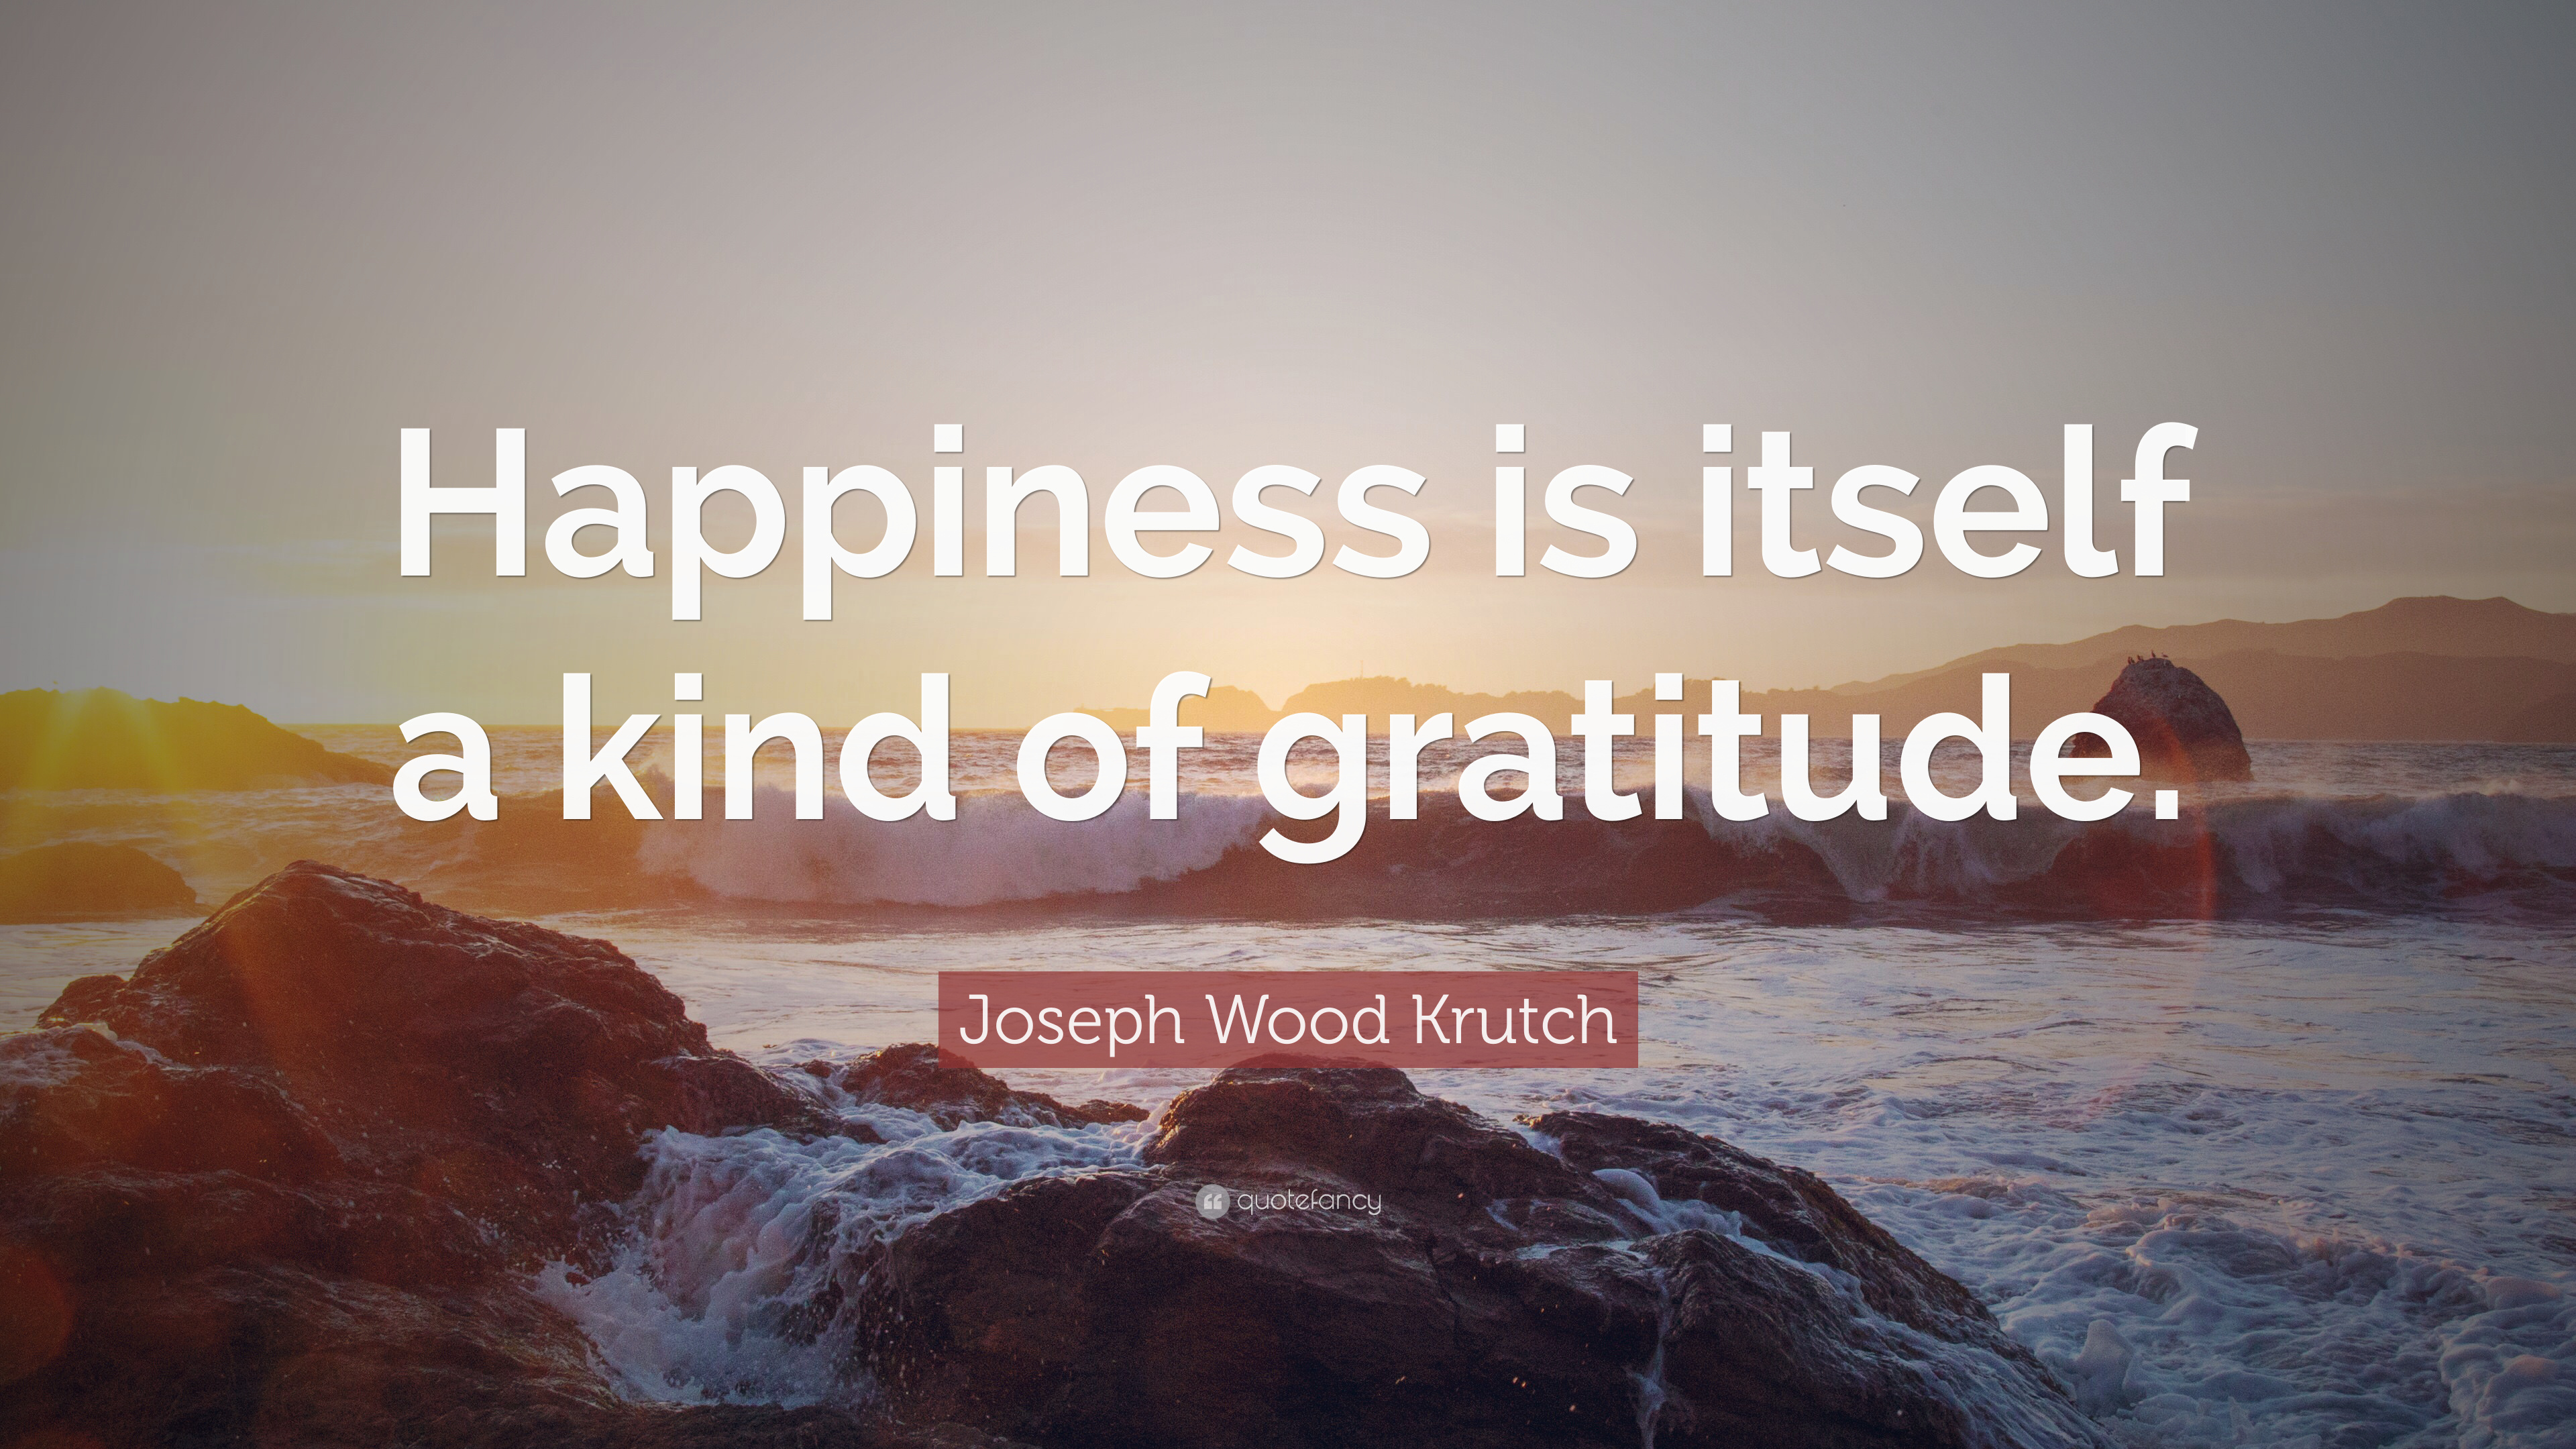 Awesome Joseph Wood Krutch Quote: U201cHappiness Is Itself A Kind Of Gratitude.u201d